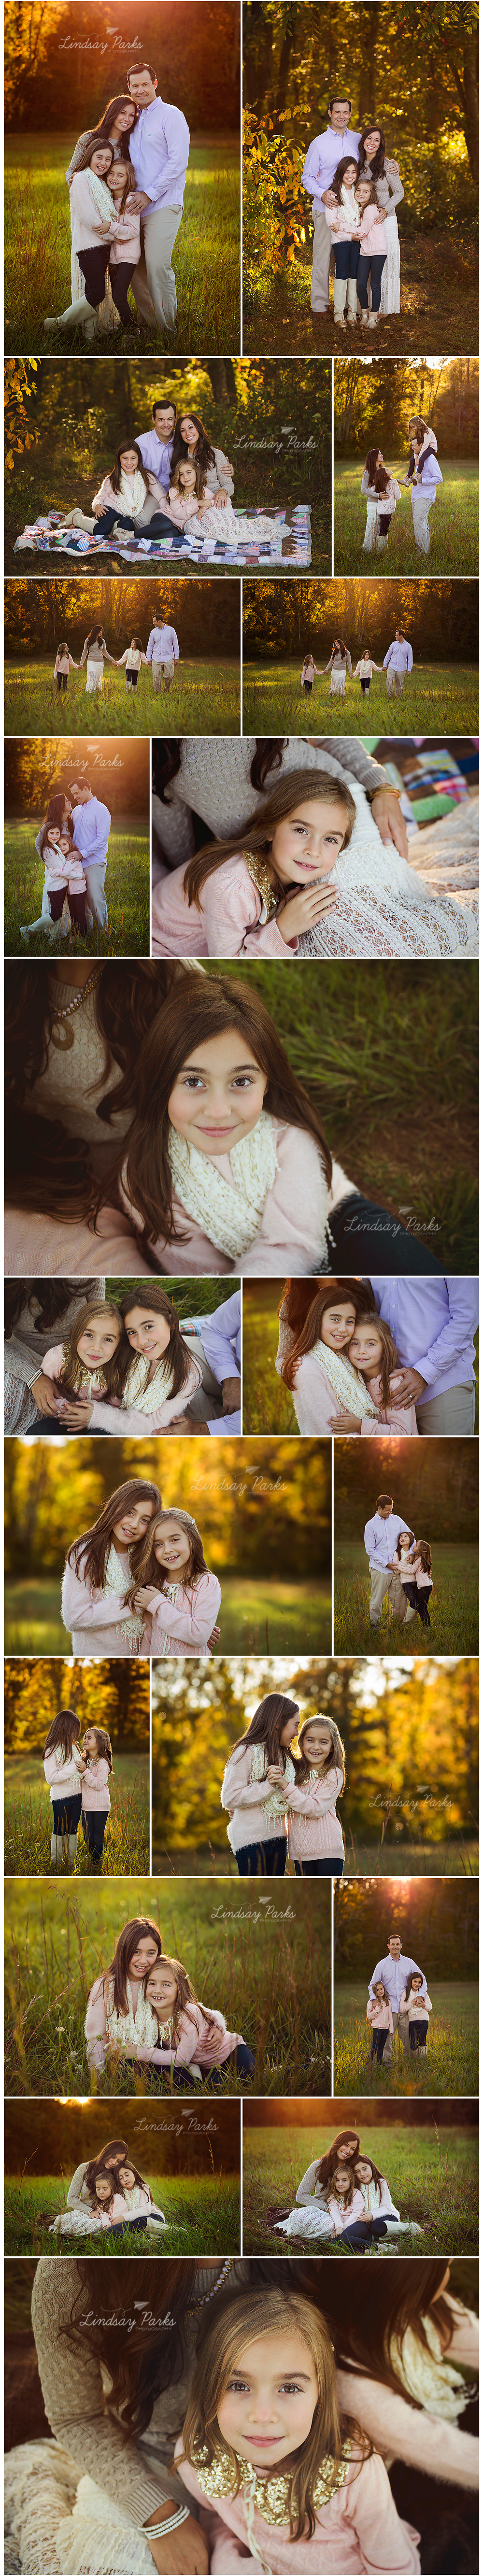 harford_county_maryland_family_and_child_photographer